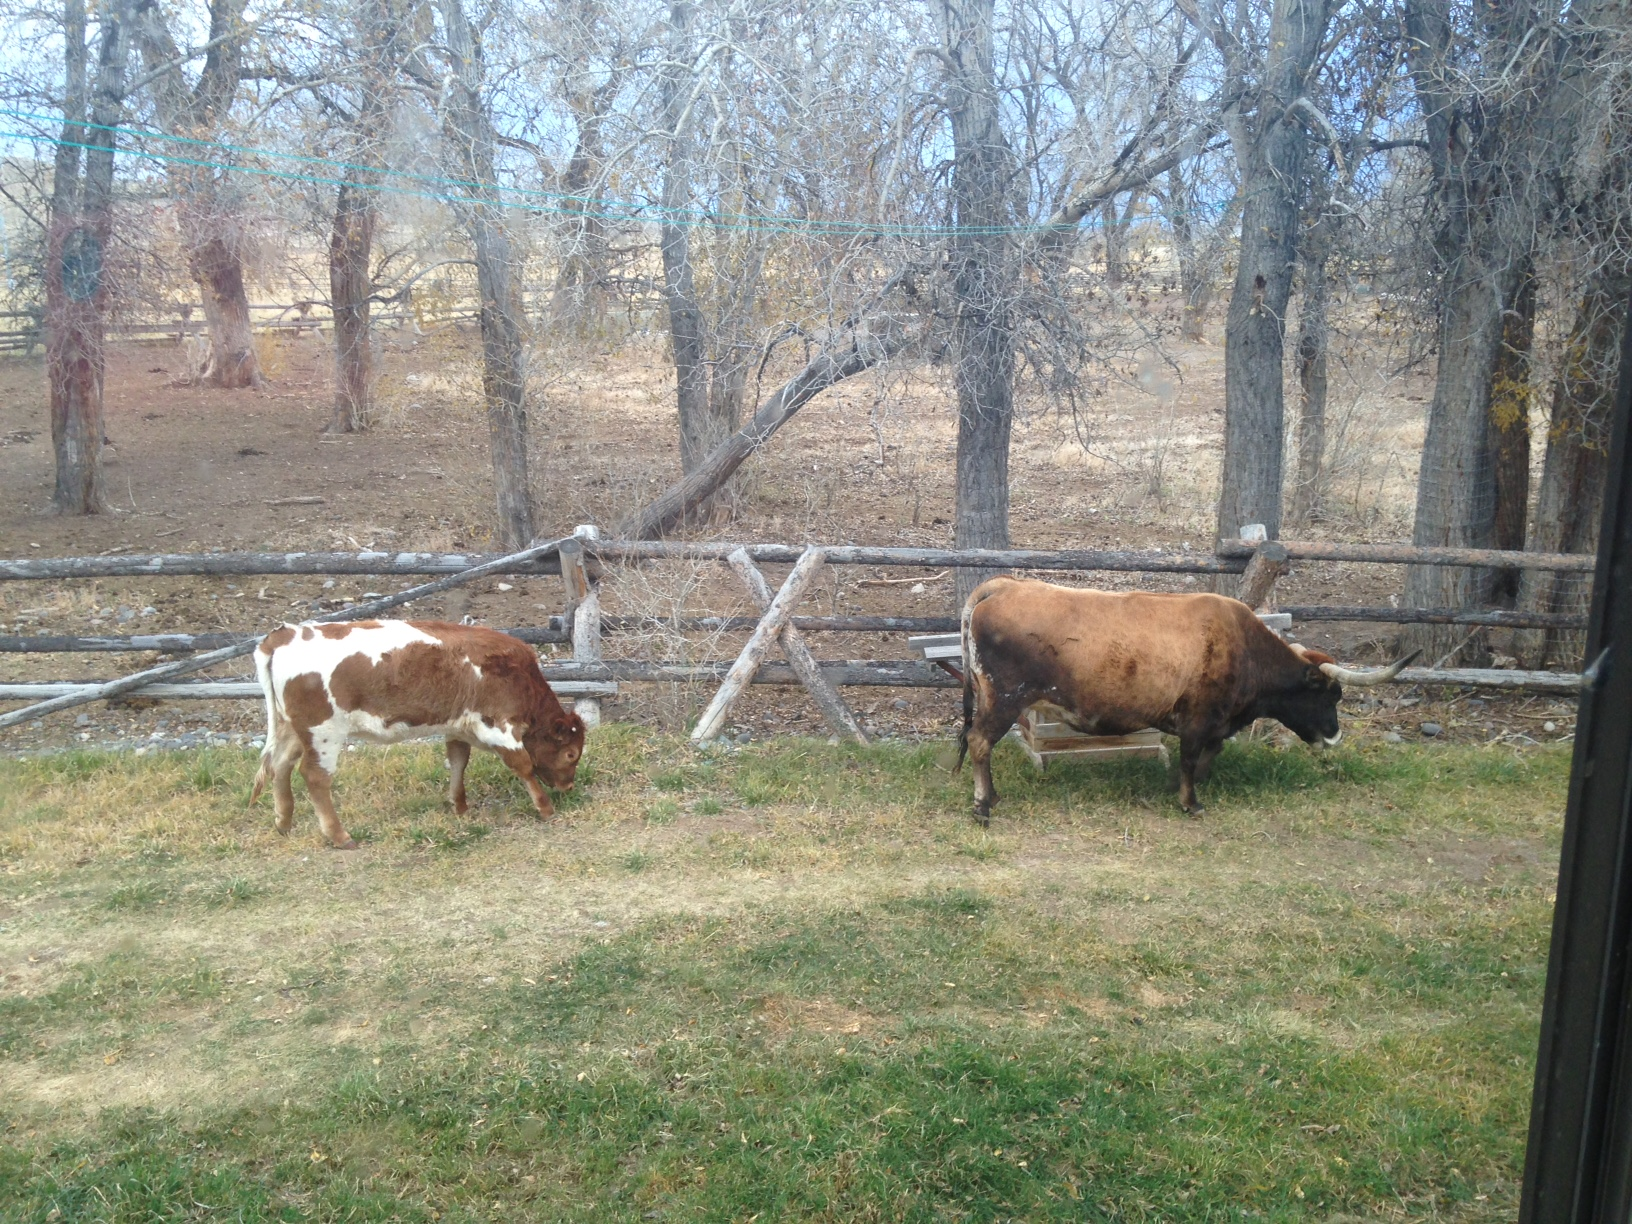 That's Patsy on the right, and her calf on the left. This was taken from my kitchen window just two days ago.